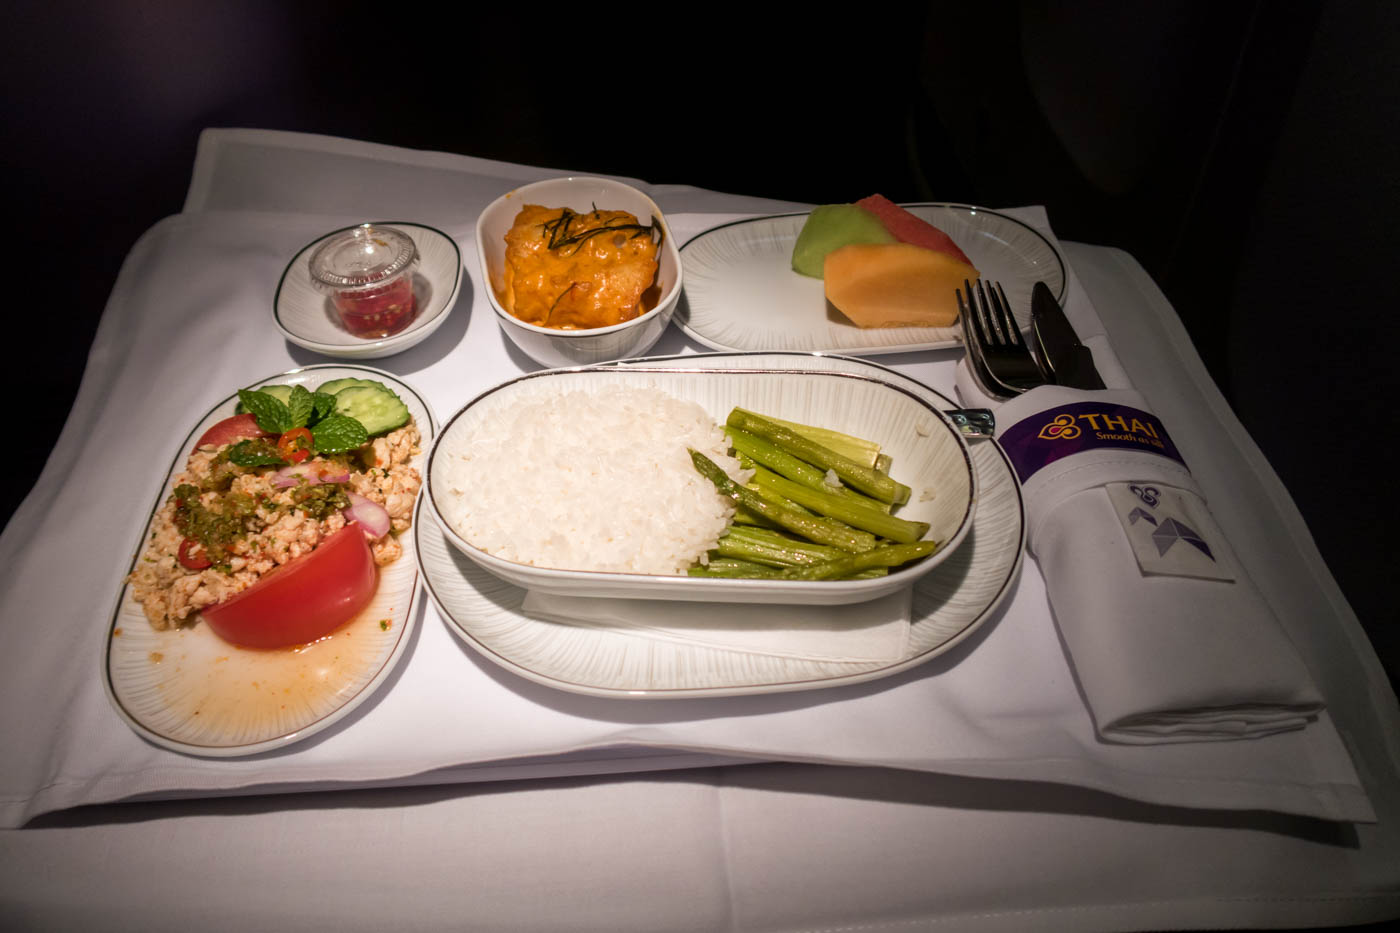 Thai Airways Business Class Fish Curry Dish